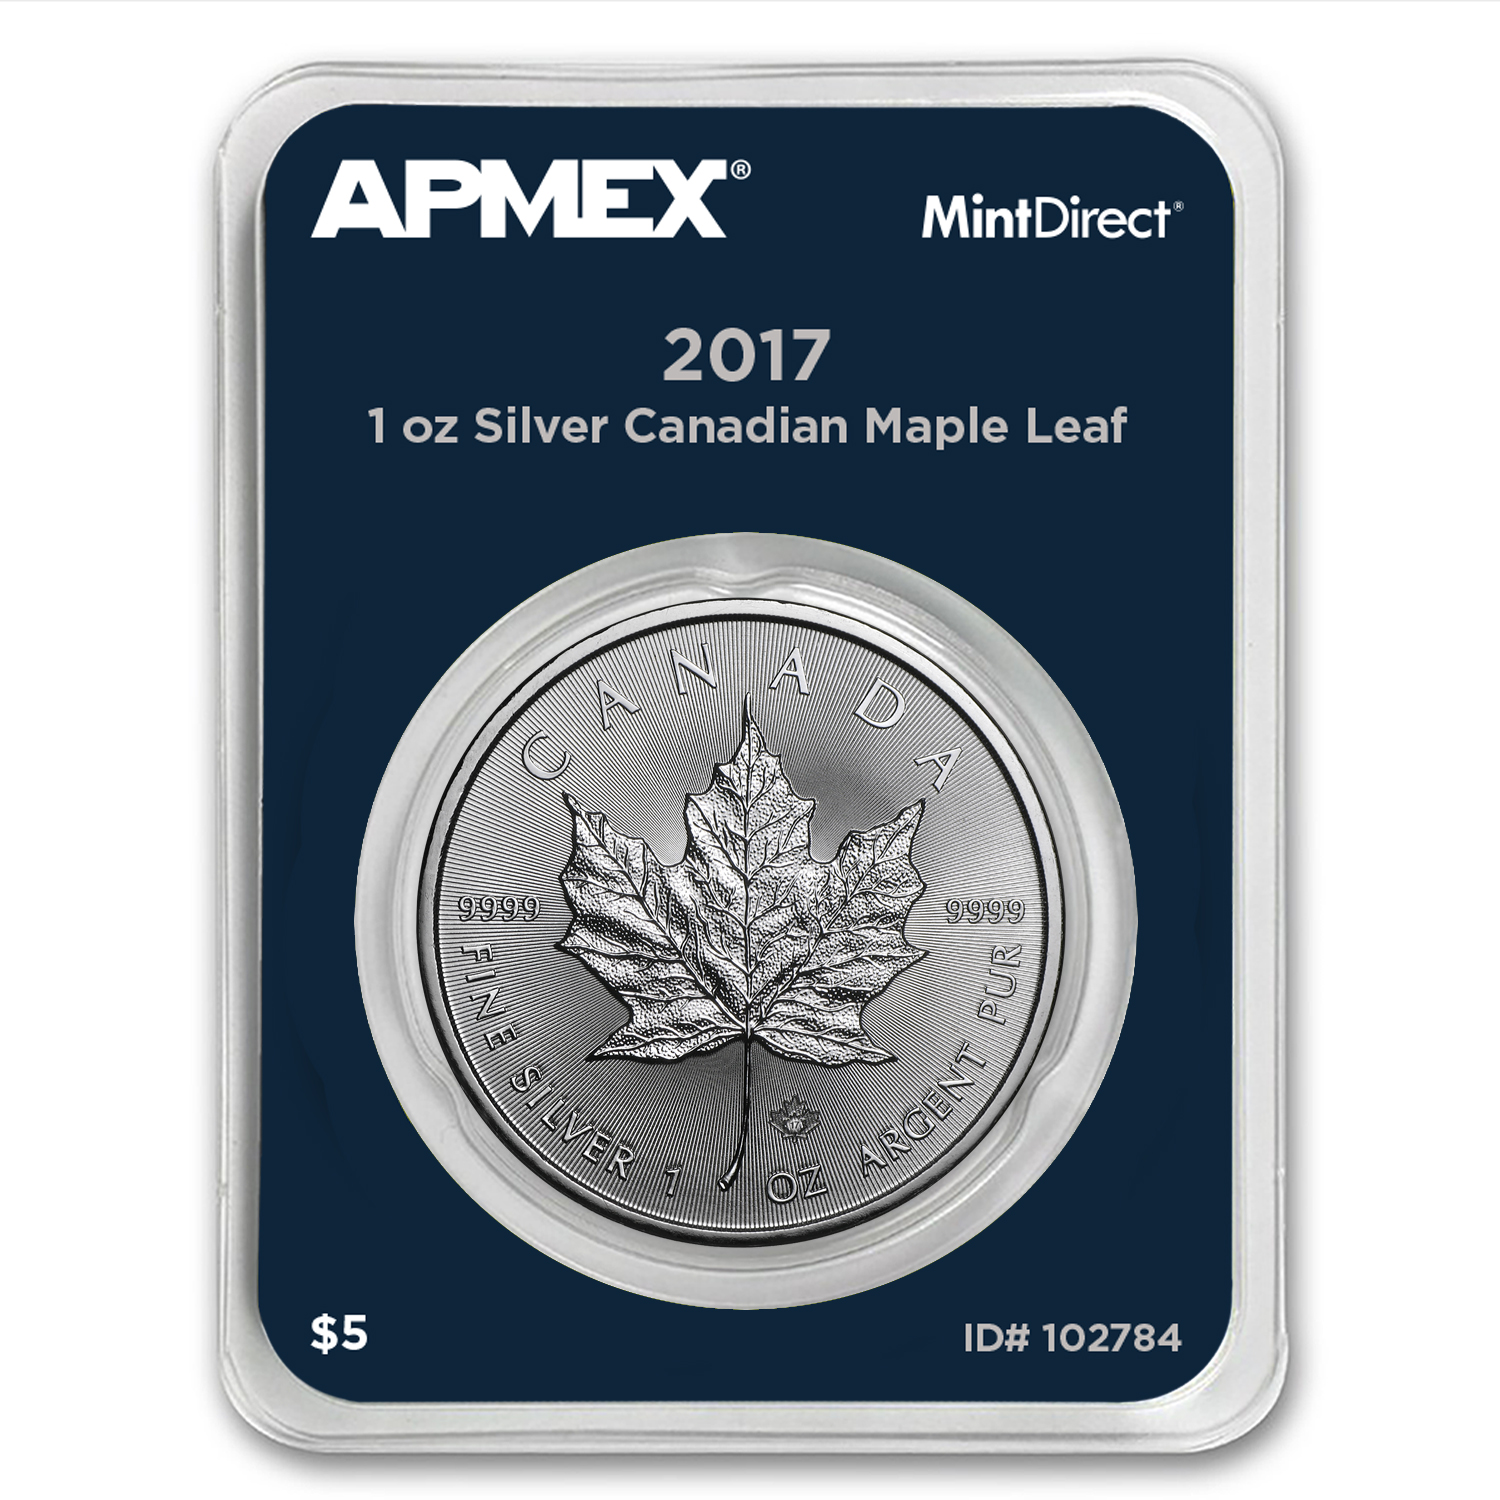 2017 Canada 1 oz Silver Maple Leaf (MintDirect® Single)